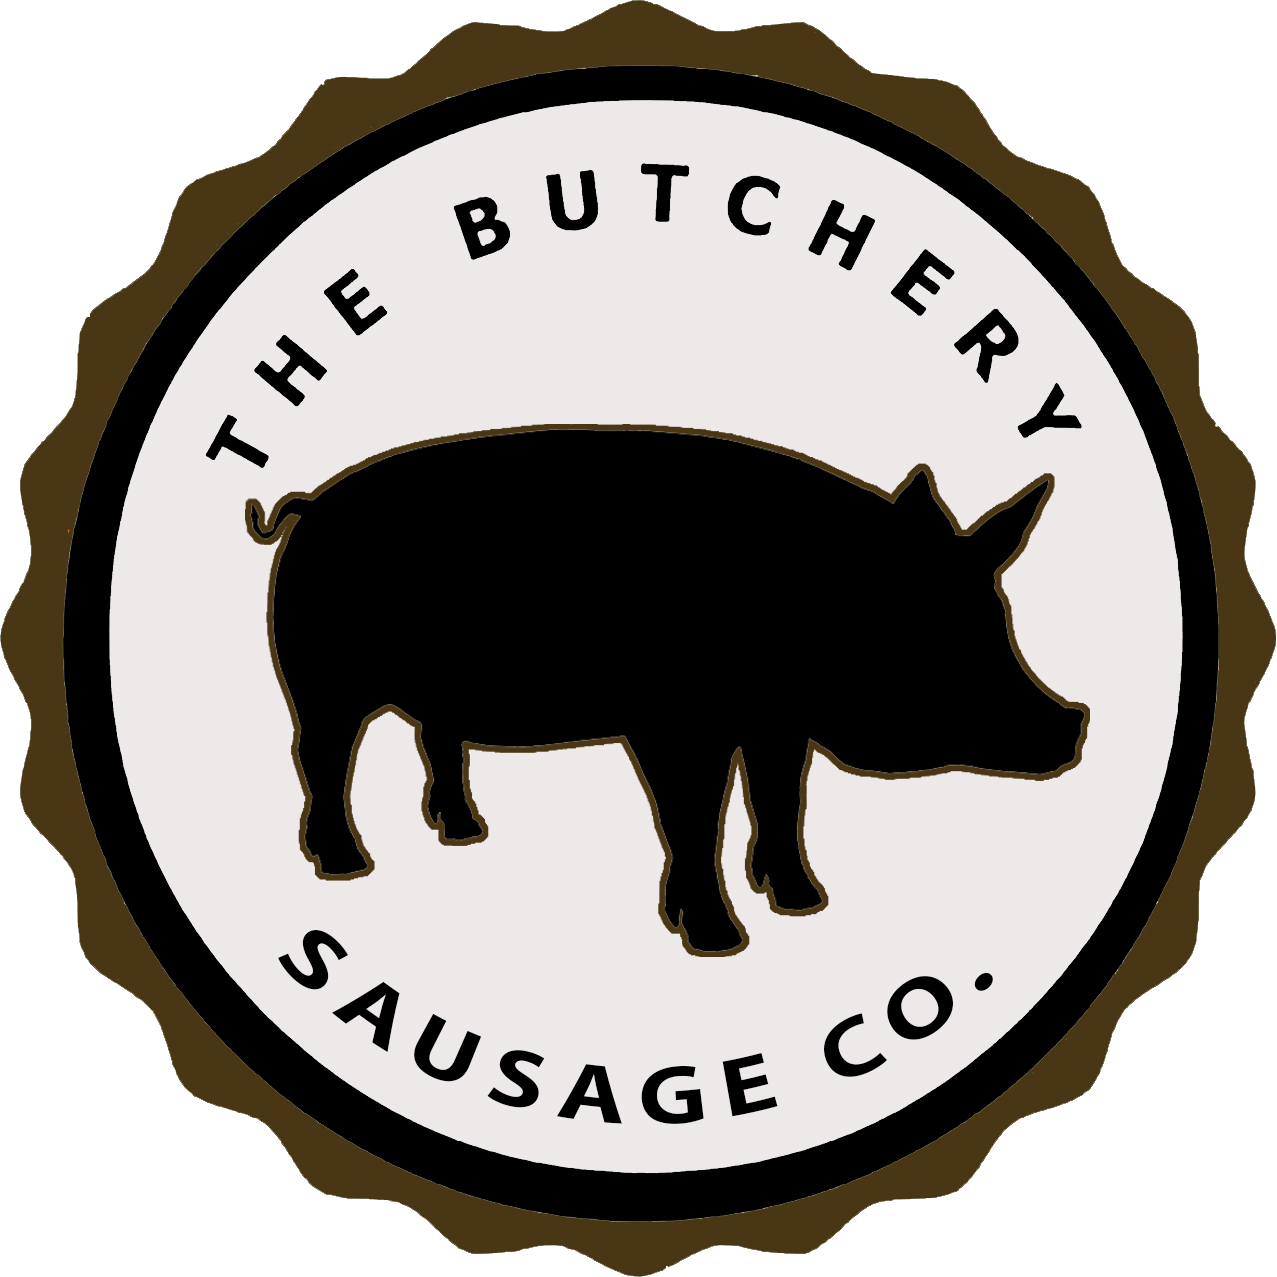 The Butchery Sausage Co.